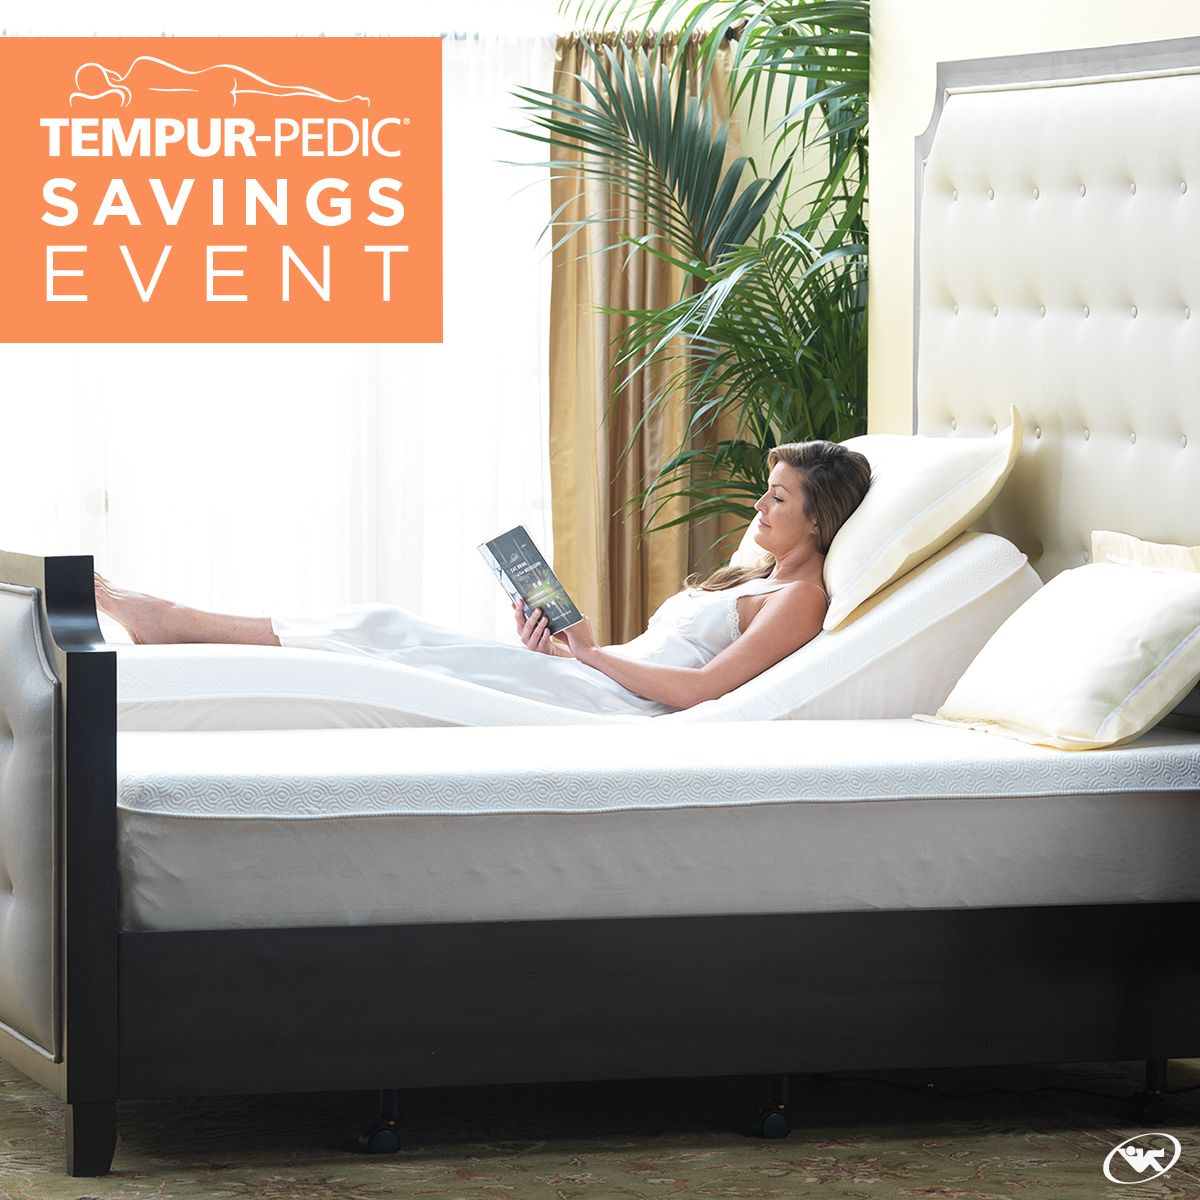 Good Nights Lead To Better Mornings Save Up To 500 On Select Adjustable Mattress Sets During Tempurpedic Mattress Tempurpedic Adjustable Mattress